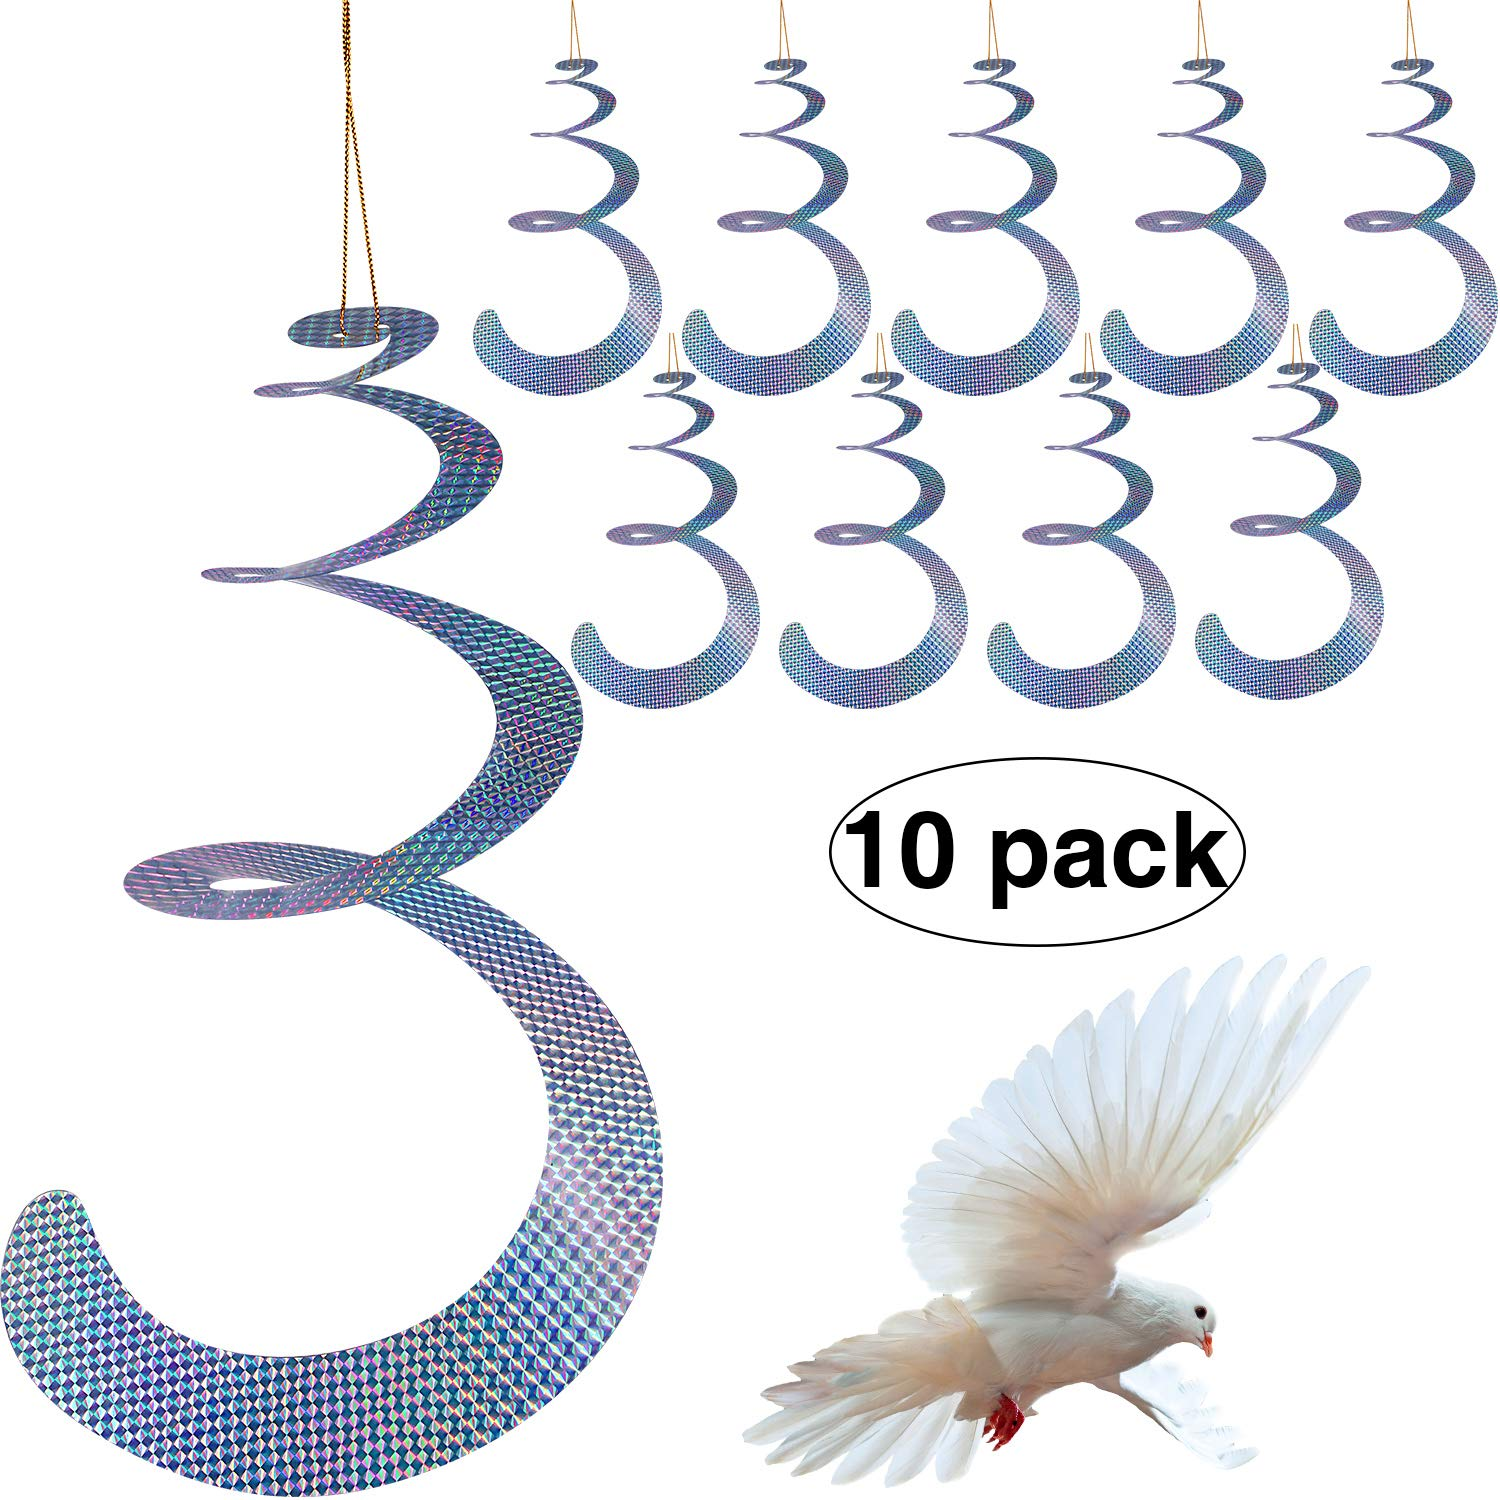 Maitys 10 Pack Bird Repellent Control Scare Device, Efficient Spiral Bird Deterrent Device Reflect Light to Scare Birds Away